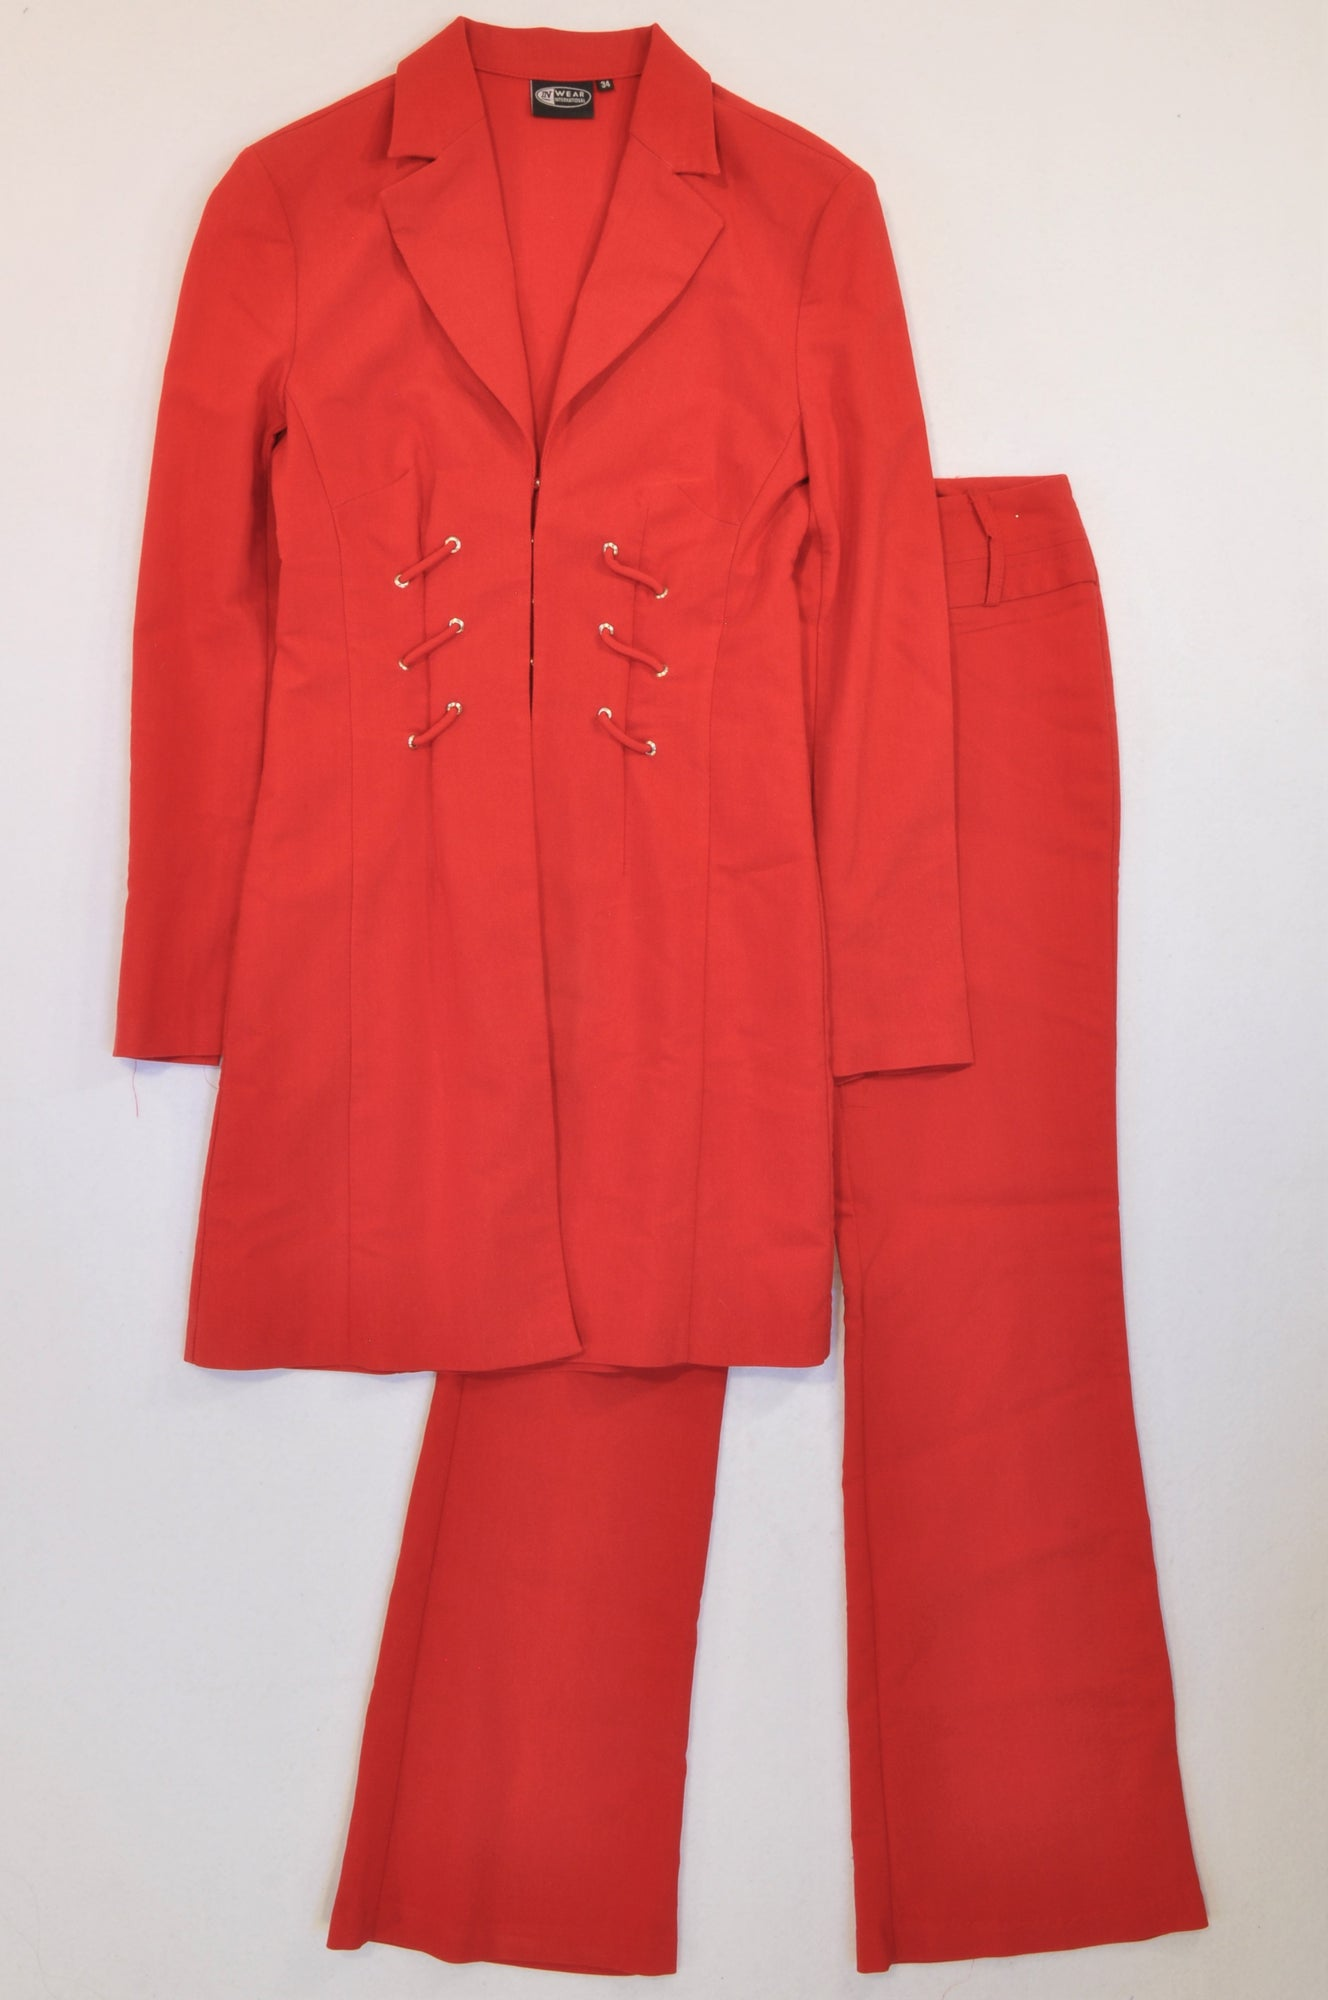 Inwear Red Corseted Jacket & Pants Outfit Women Size 34